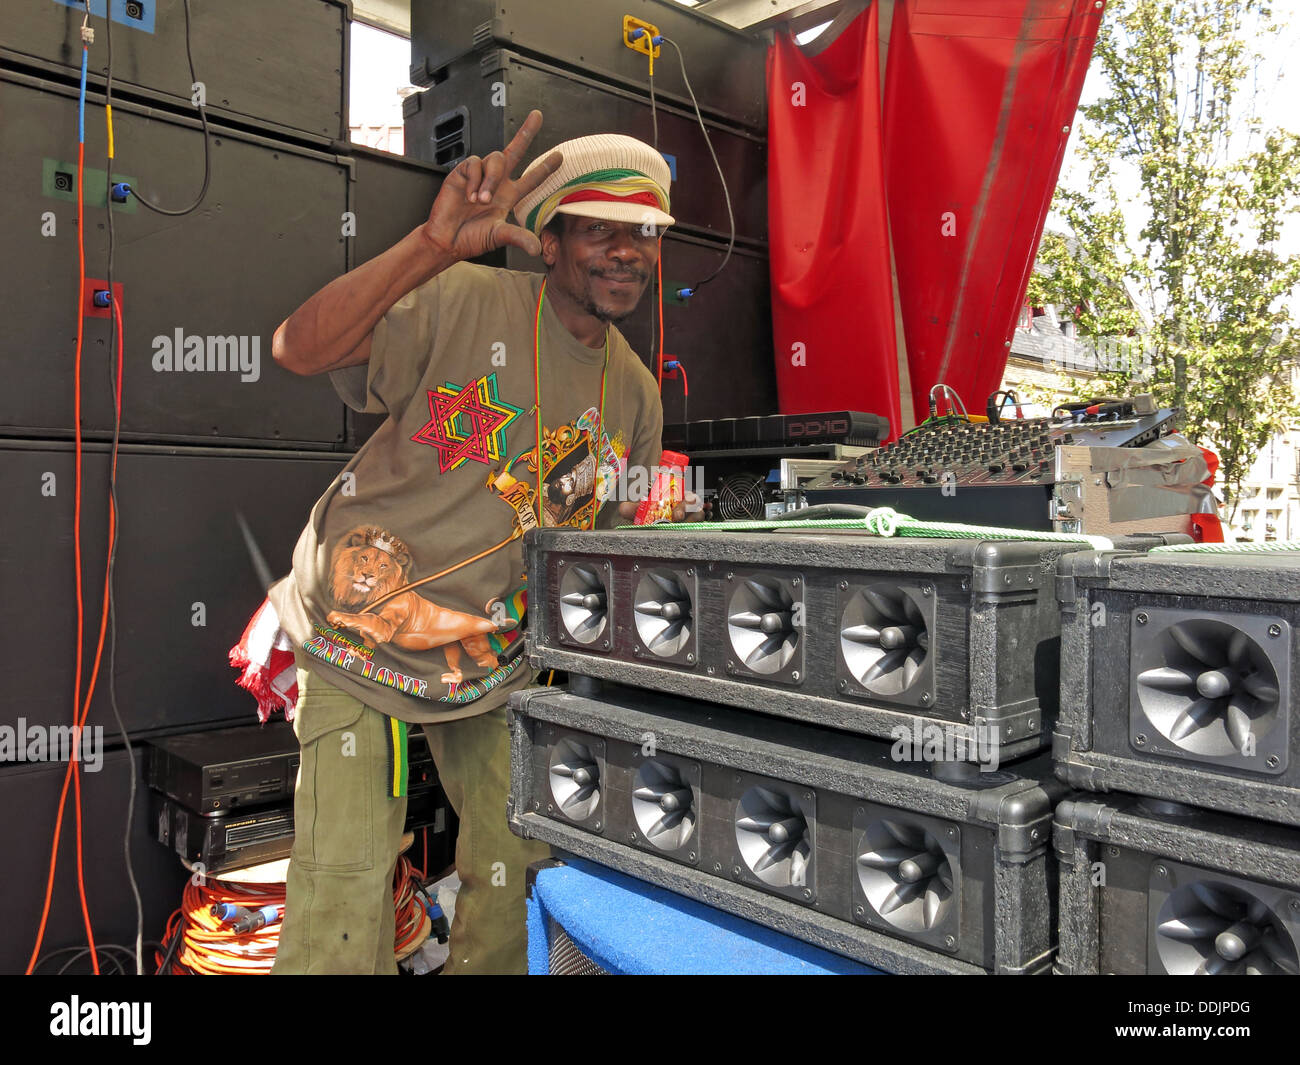 Sound man from Huddersfield Carnival 2013 African Caribbean parade street party - Stock Image